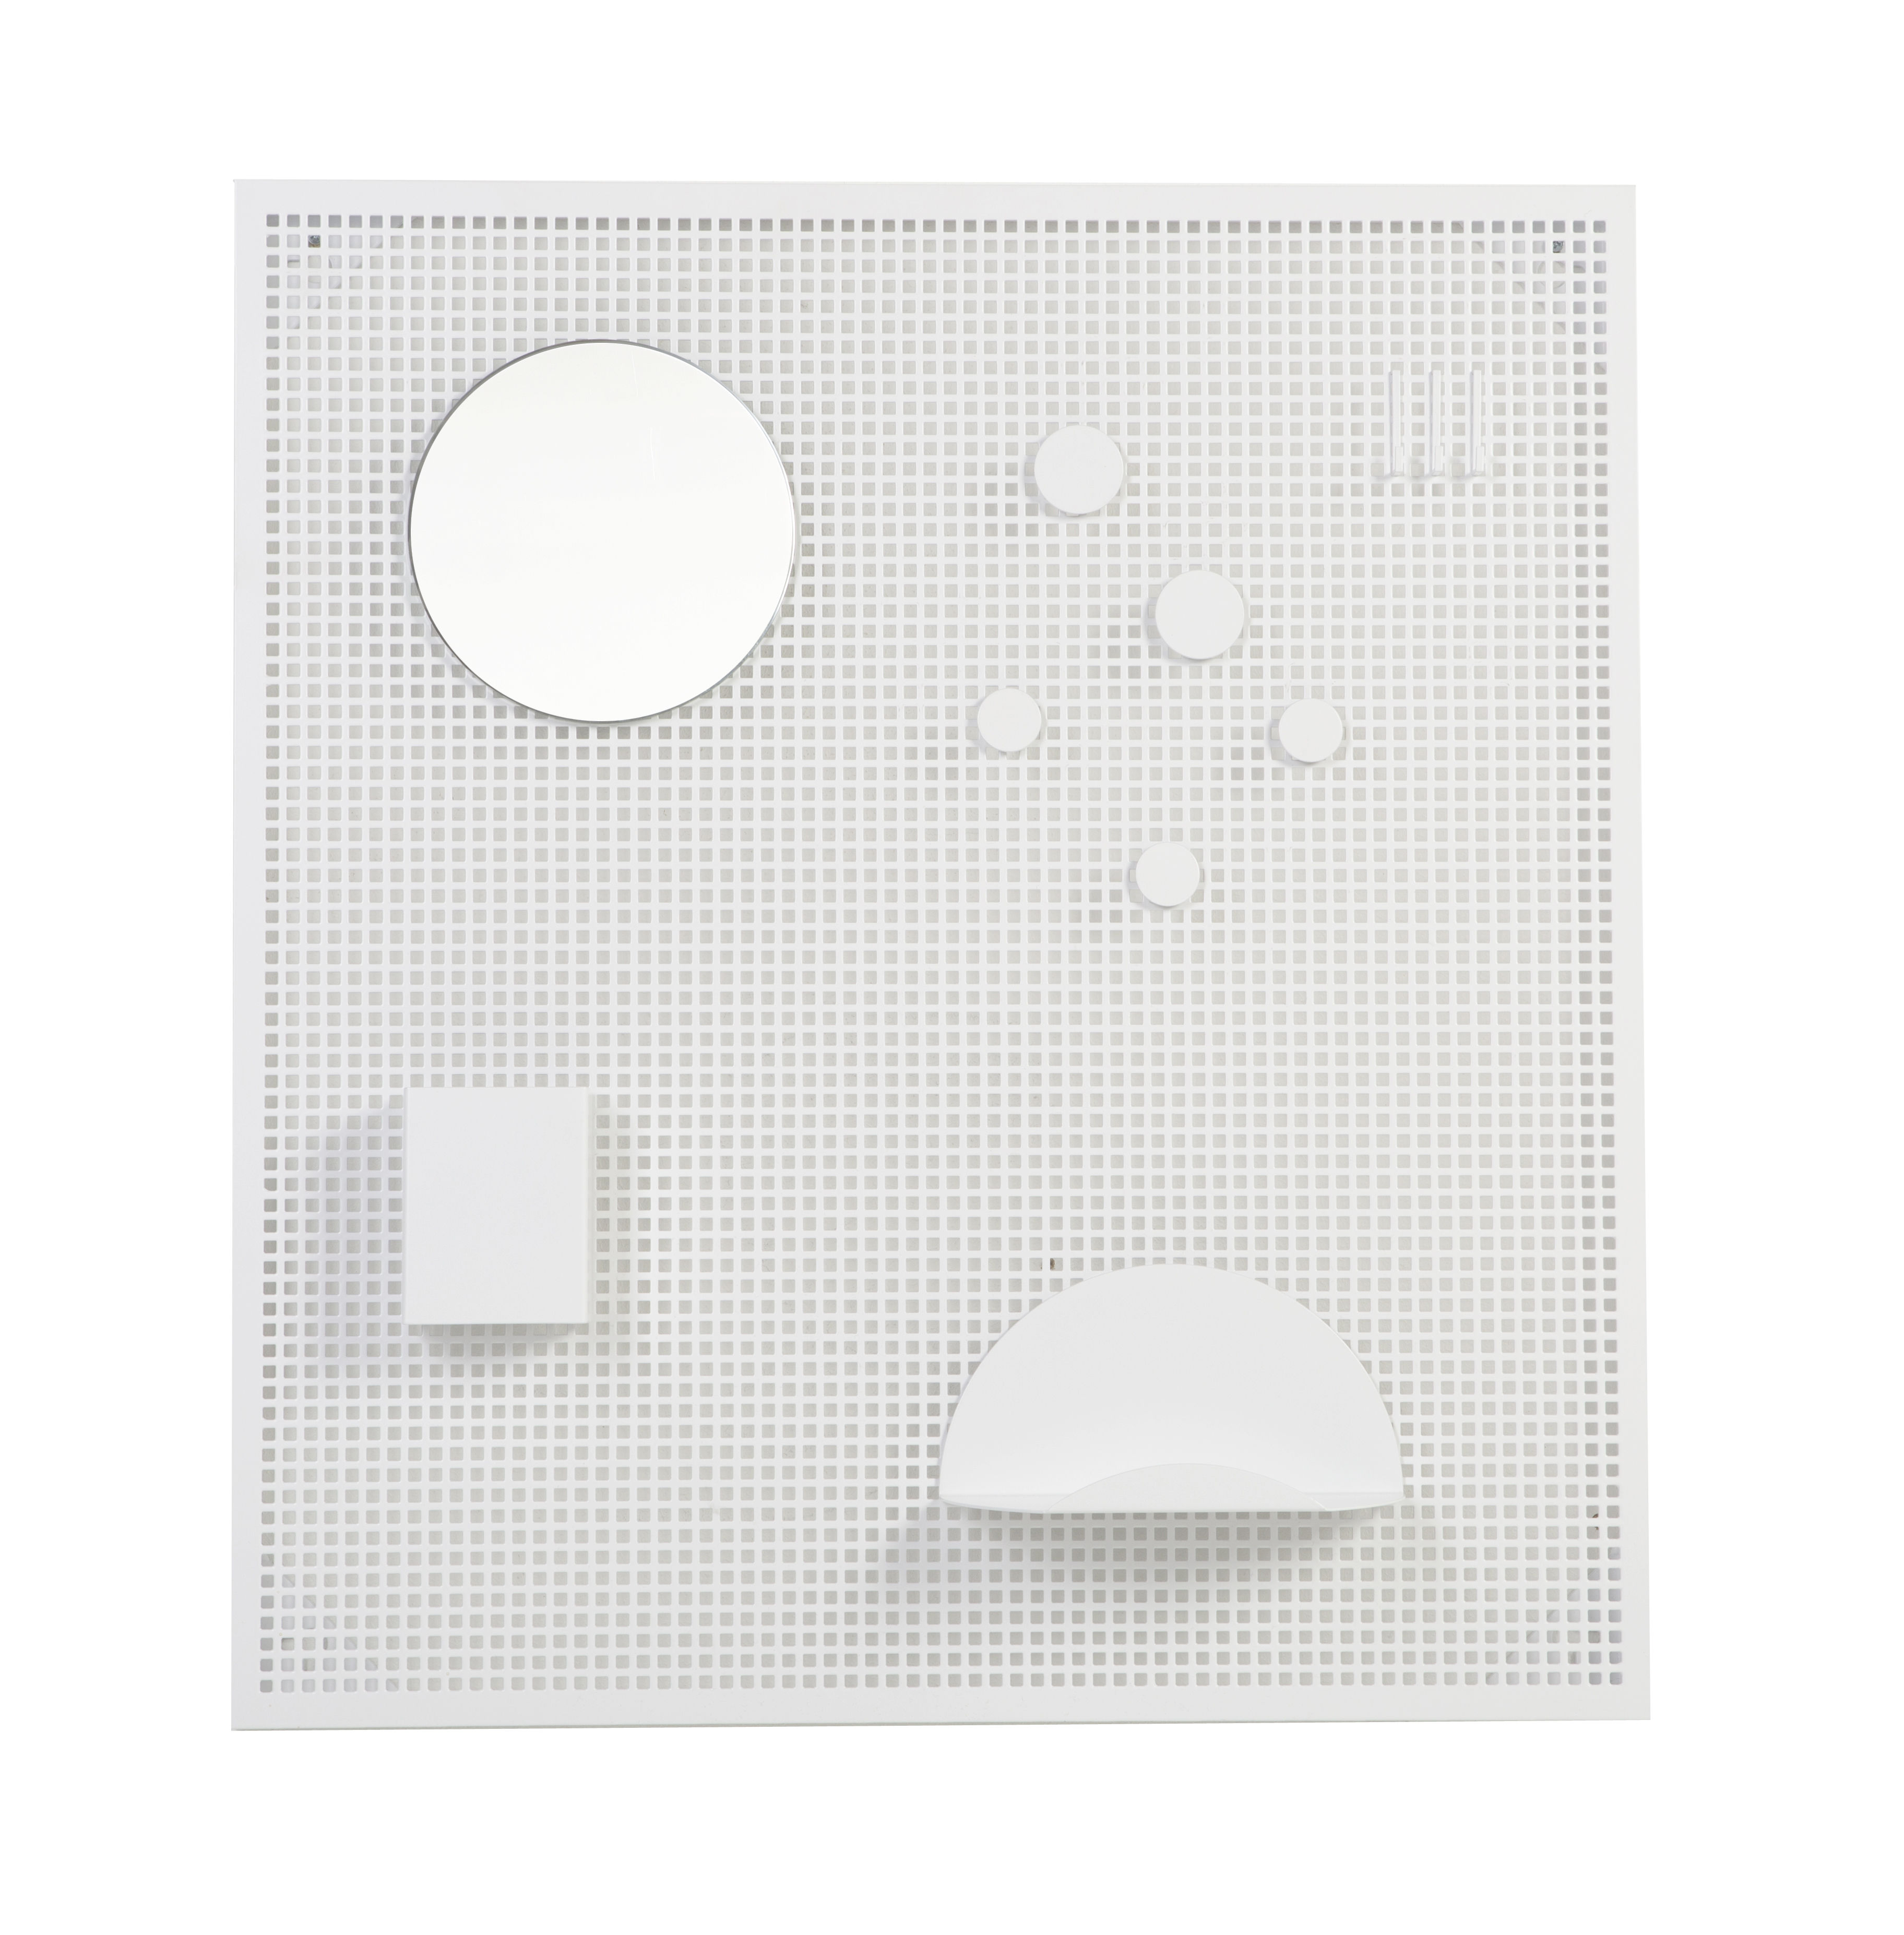 Decoration - Children's Home Accessories - Wall organisers - With 5 accessories - Magnetic by OK Design pour Sentou Edition - White - Perforated metal